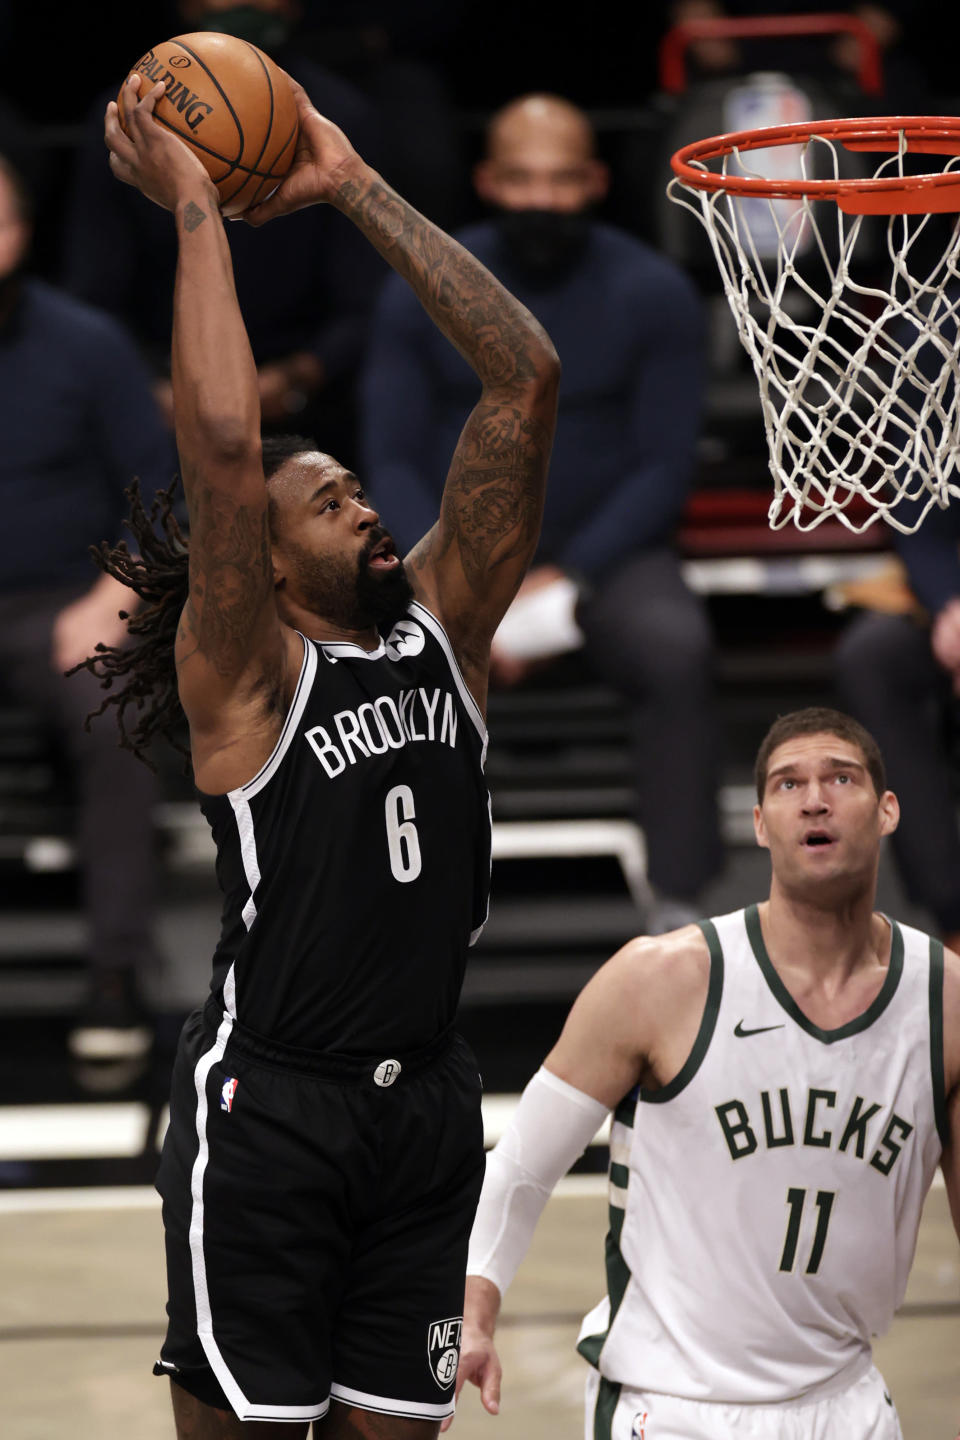 Brooklyn Nets center DeAndre Jordan (6) dunks the ball in front of Milwaukee Bucks center Brook Lopez during the first half of an NBA basketball game Monday, Jan. 18, 2021, in New York. (AP Photo/Adam Hunger)